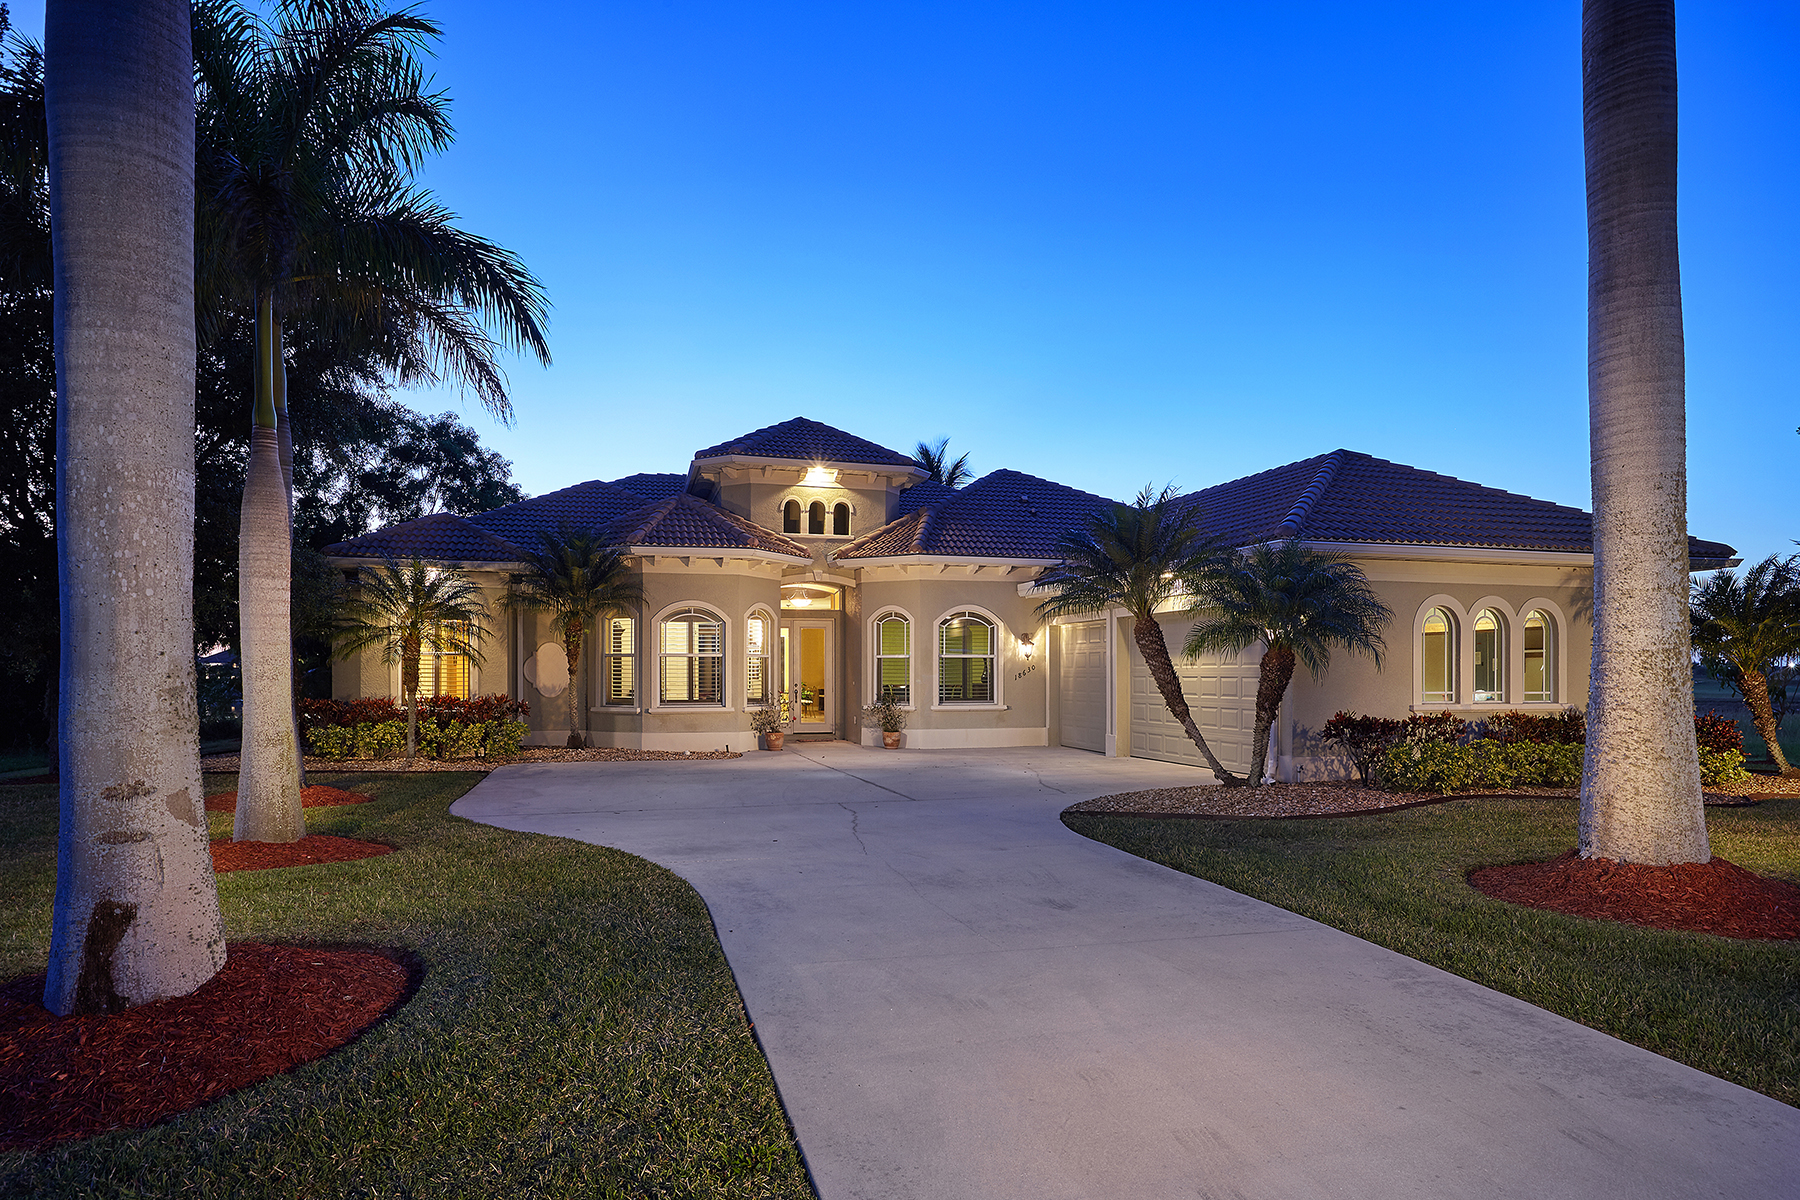 Single Family Home for Sale at ROYAL PALM GOLF ESTATES 18630 Royal Hammock Blvd Naples, Florida, 34114 United States